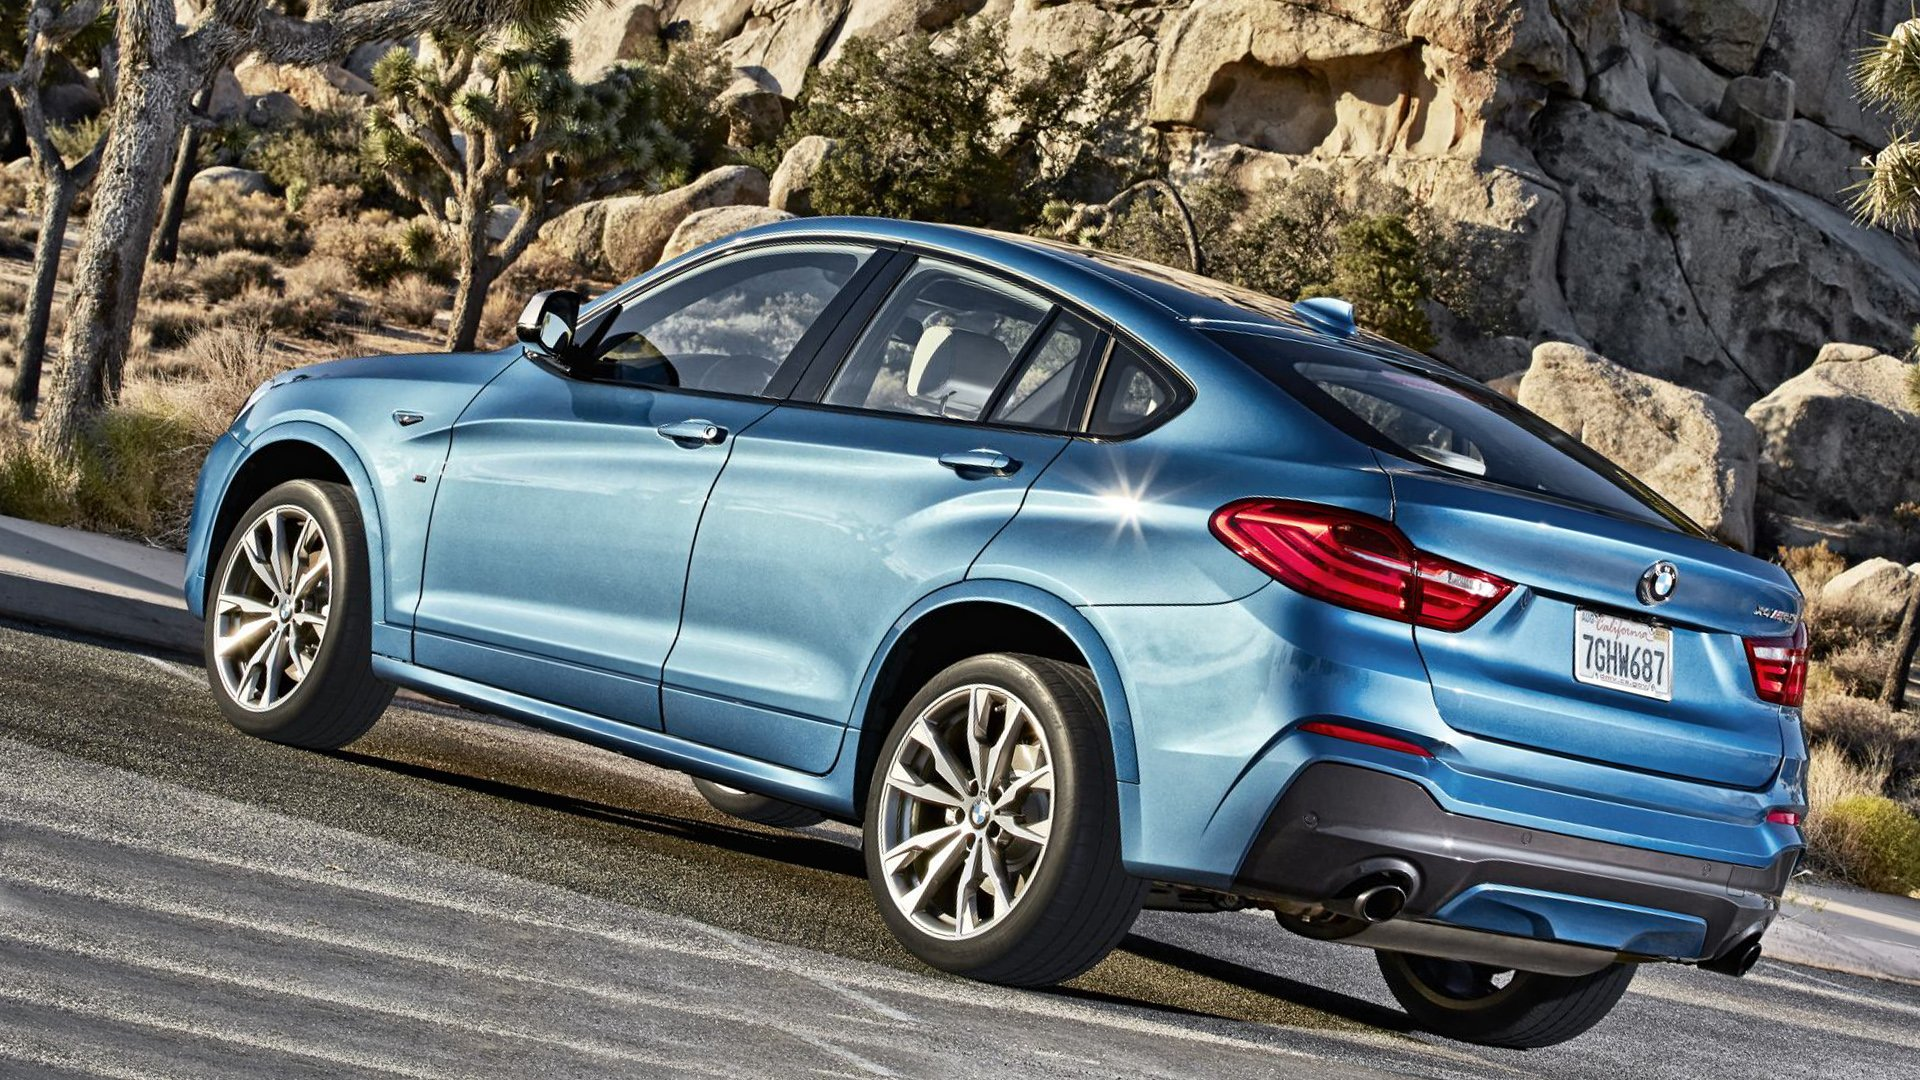 2019 BMW X4 M40i Hybrid Sport Full HD